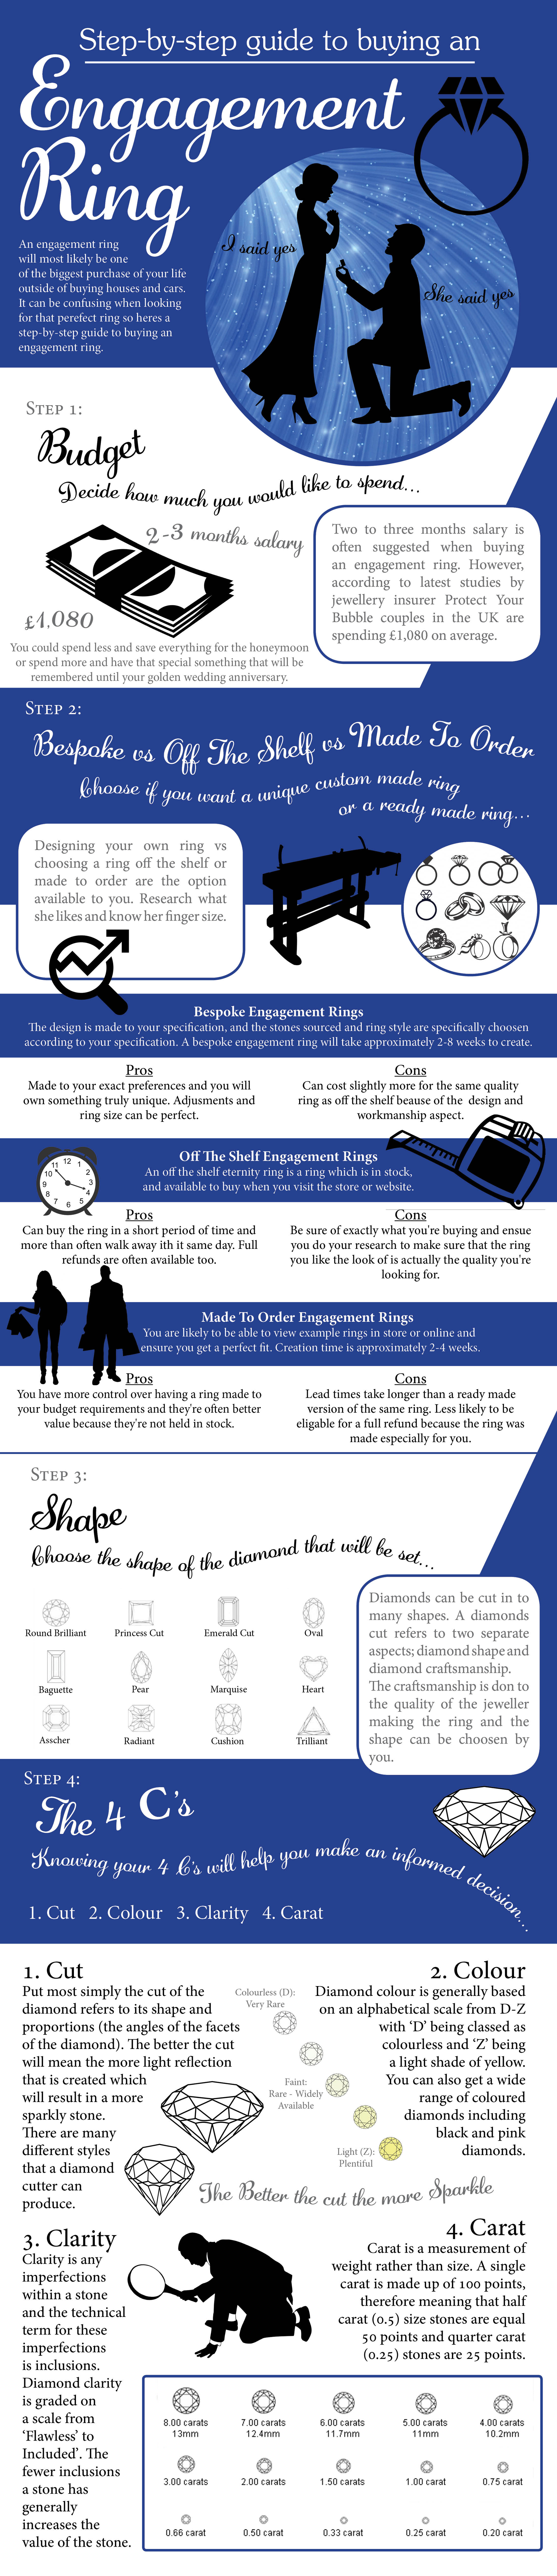 Buying An Engagement Ring UK Infographic 2017